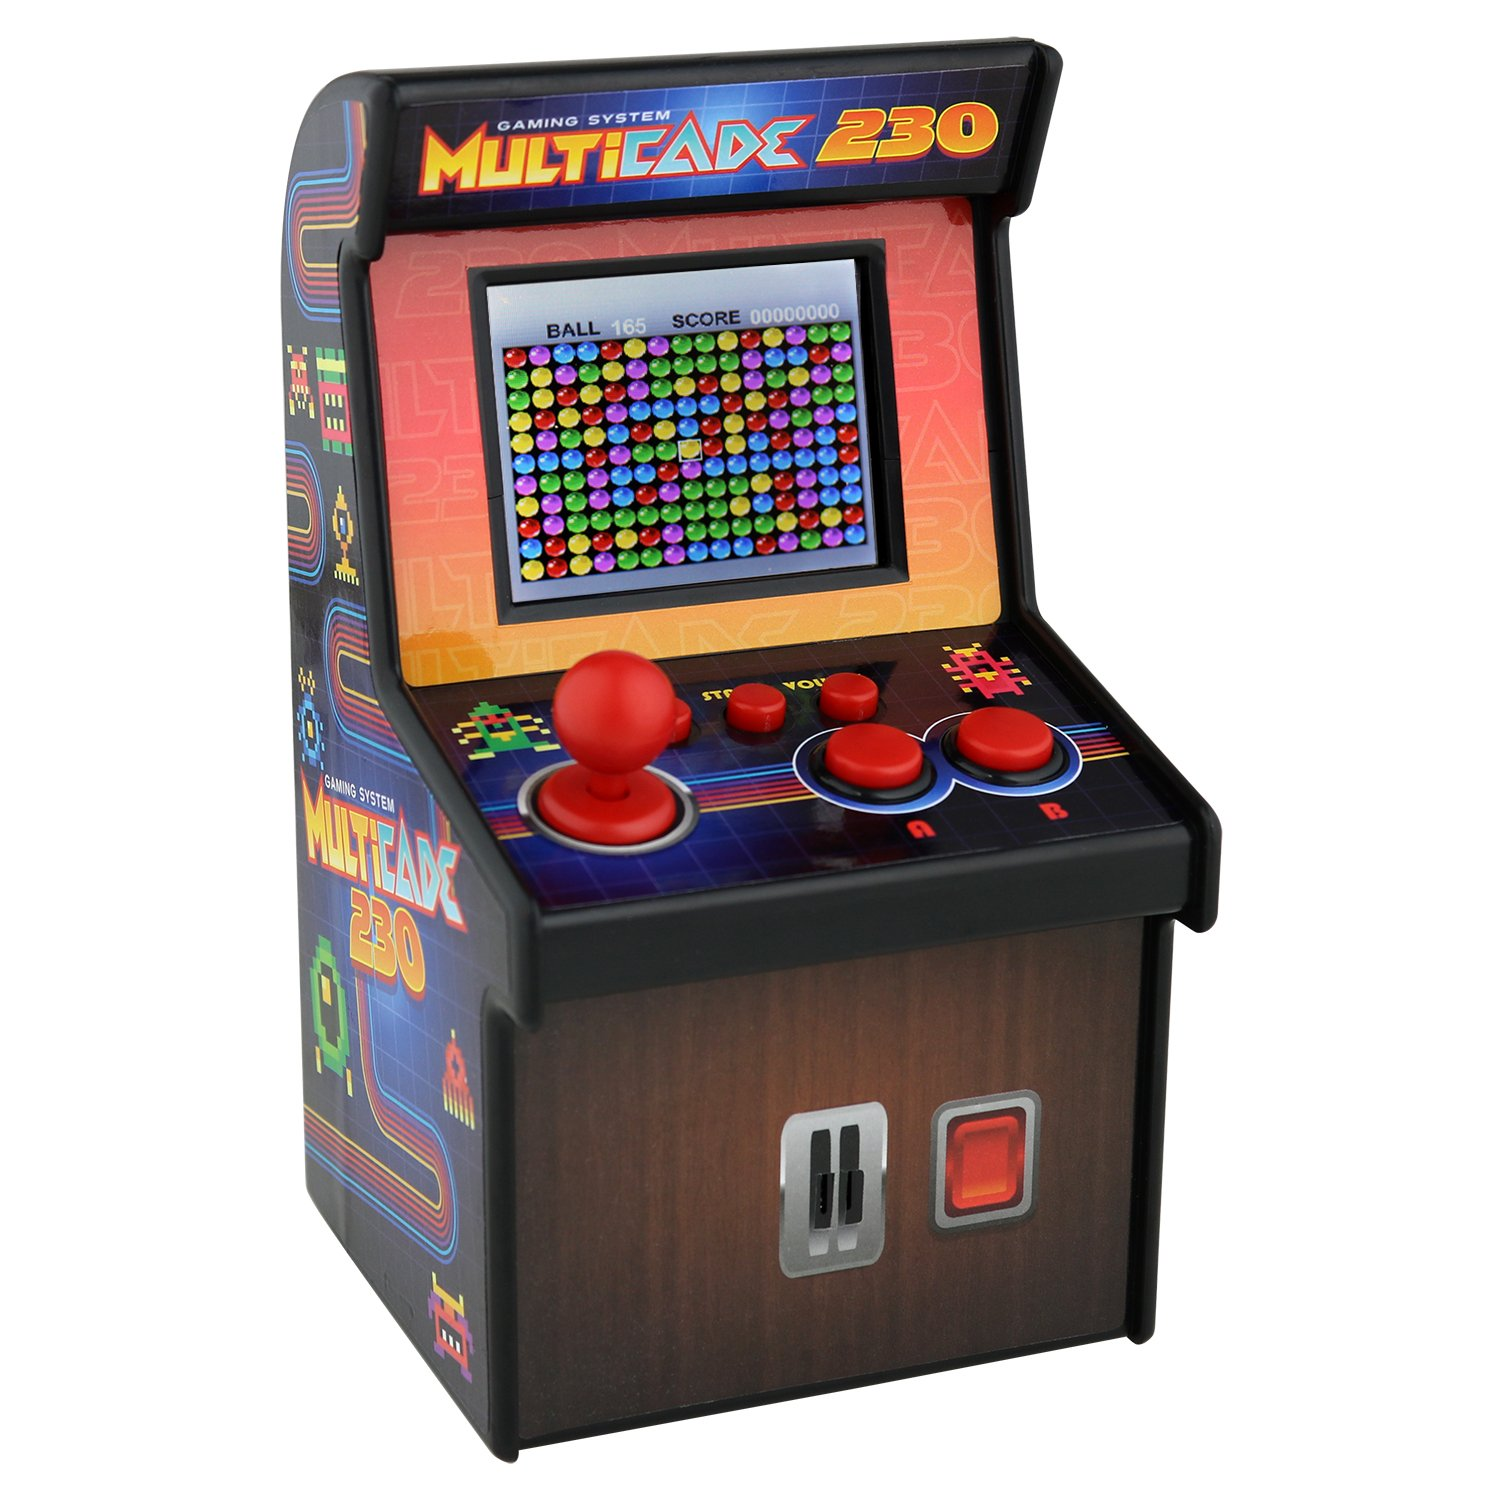 Fabulous Amazon.com: SoundLogic XT Multicade 230 Miniature Retro Arcade  QJ91